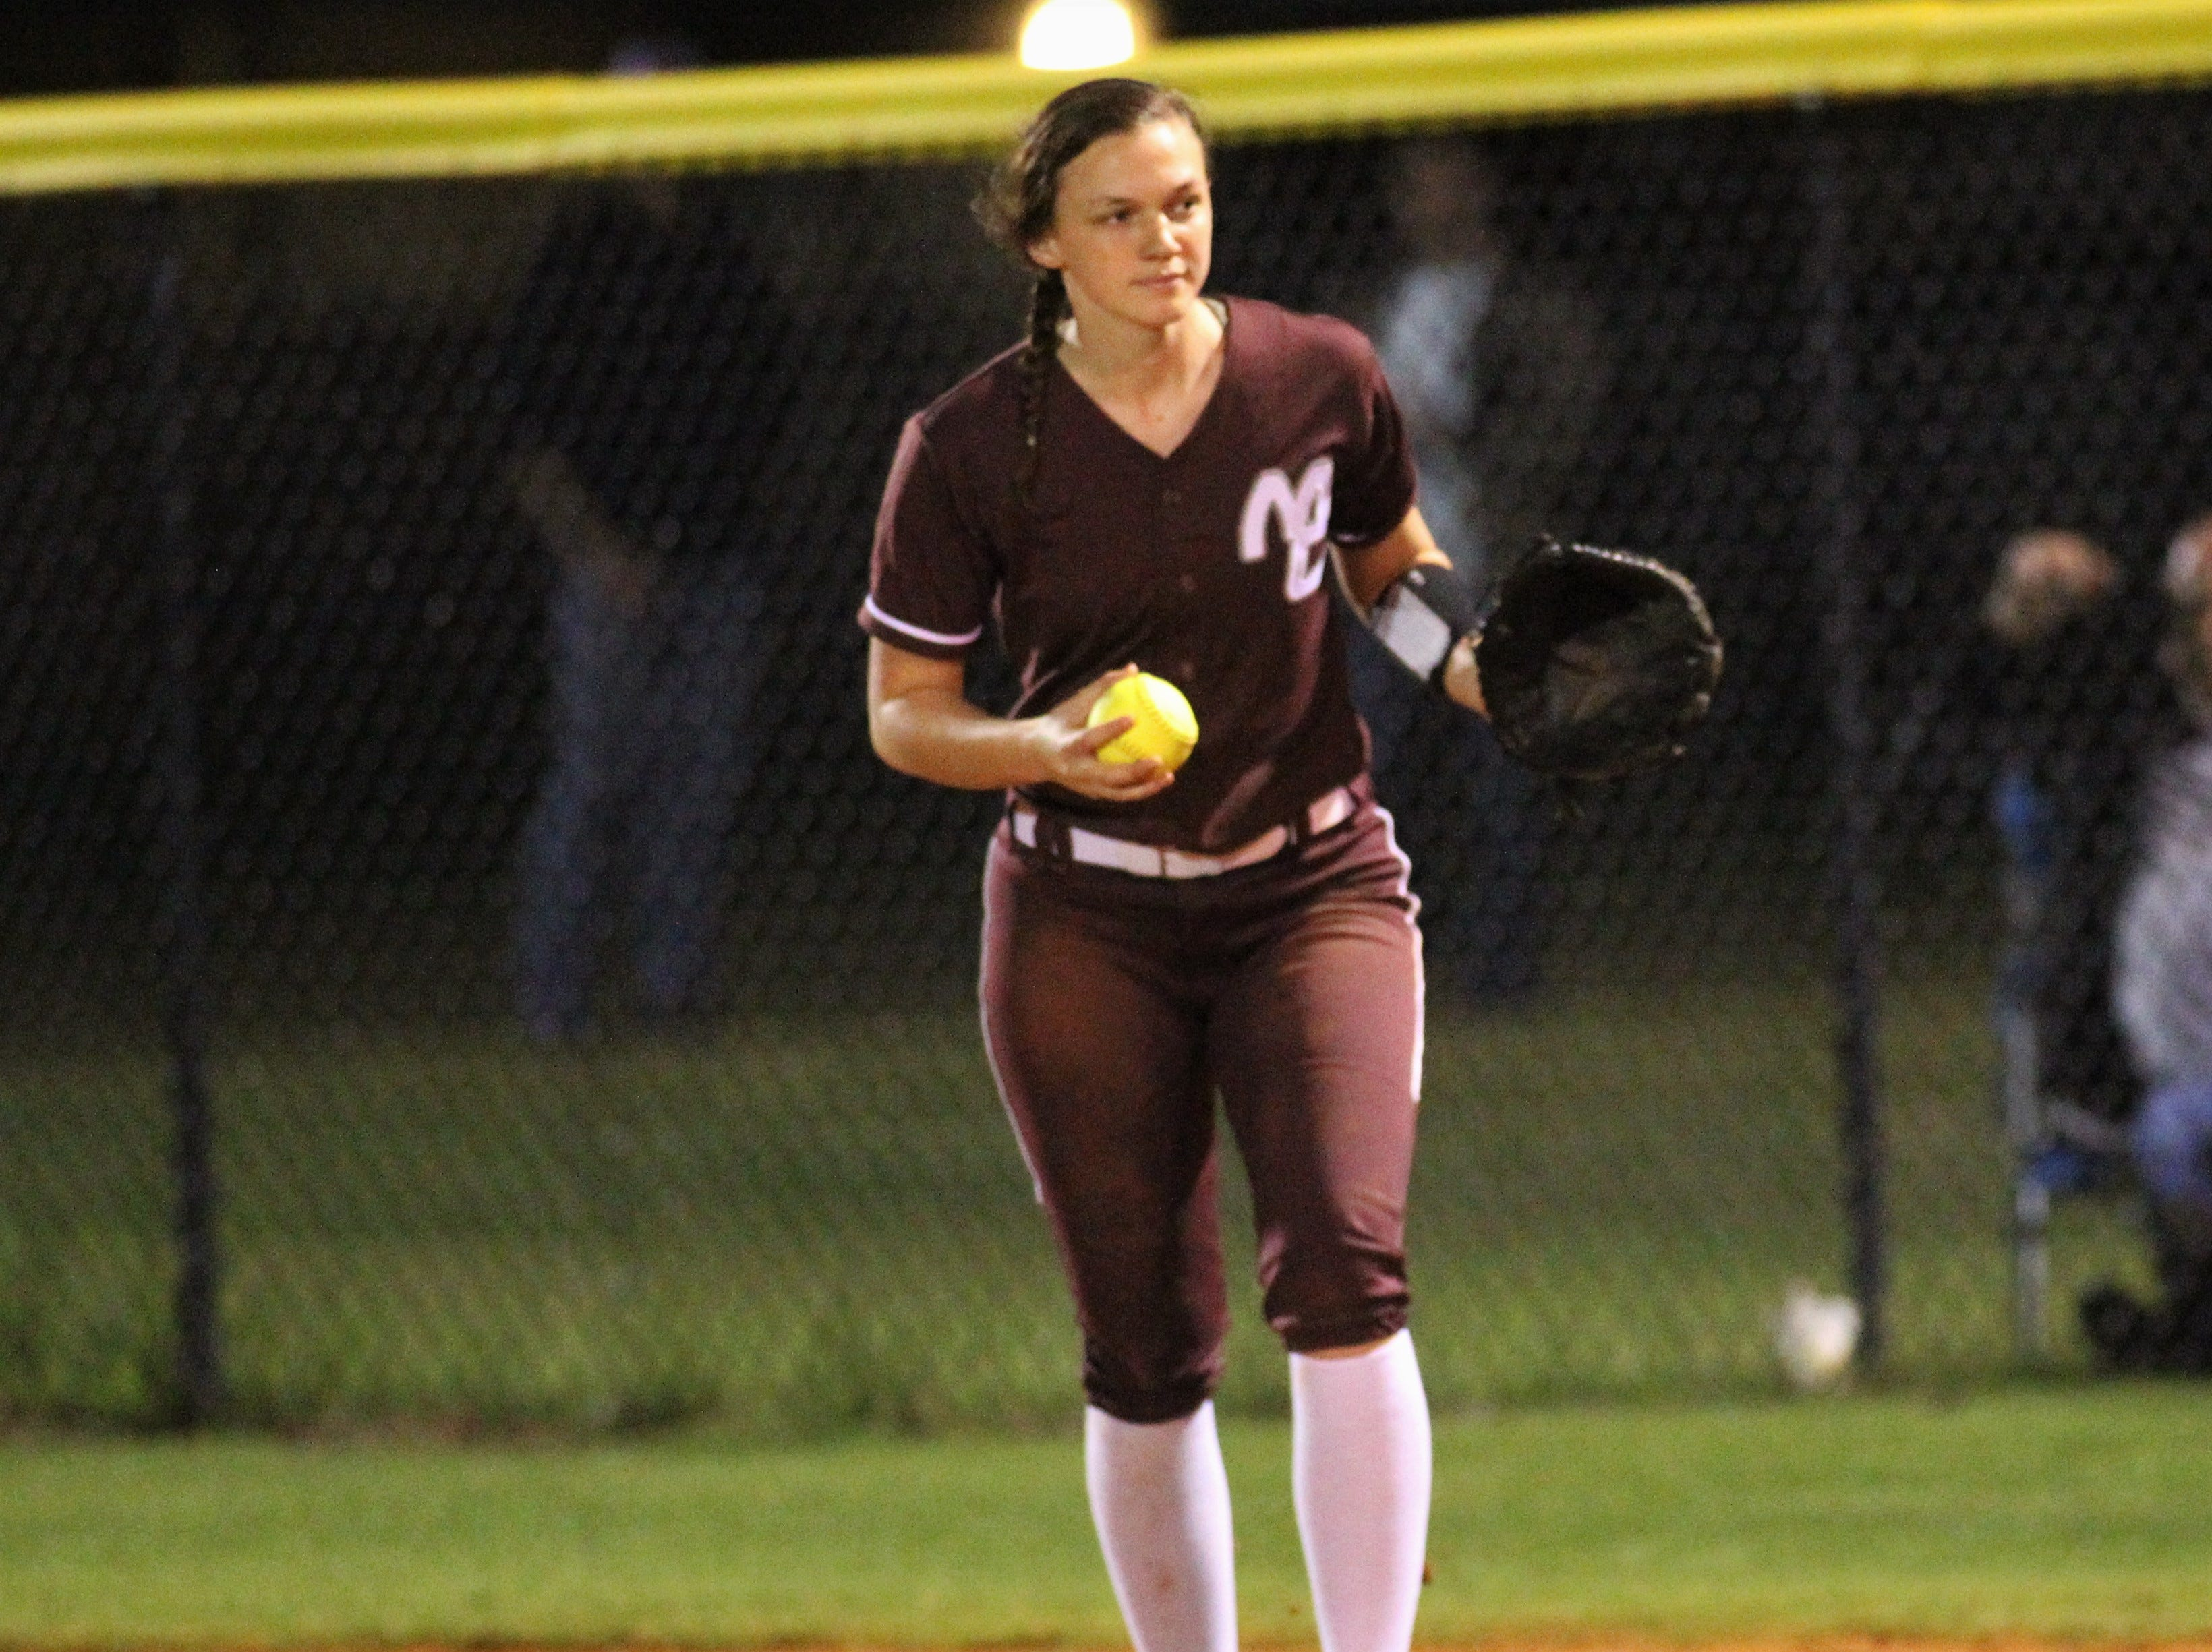 Madison County's Hope Underhill jogs a foul ball back in as the Cowgirls' softball team beat Suwannee 17-0 on Feb. 28, 2019.